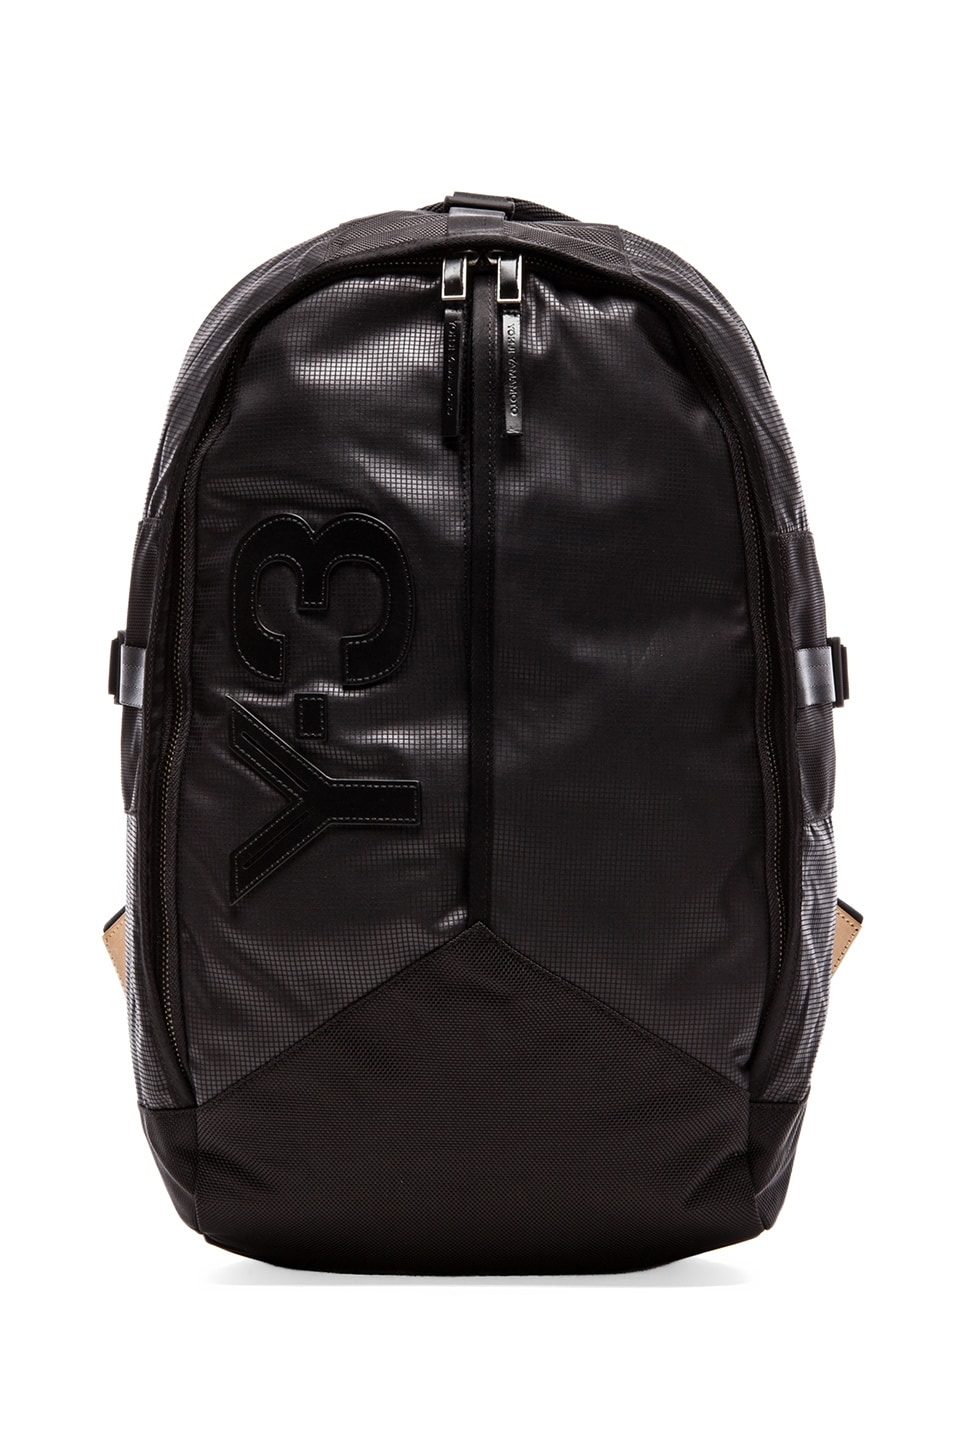 Y-3 Yohji Yamamoto Day Backpack in Y-3 Black